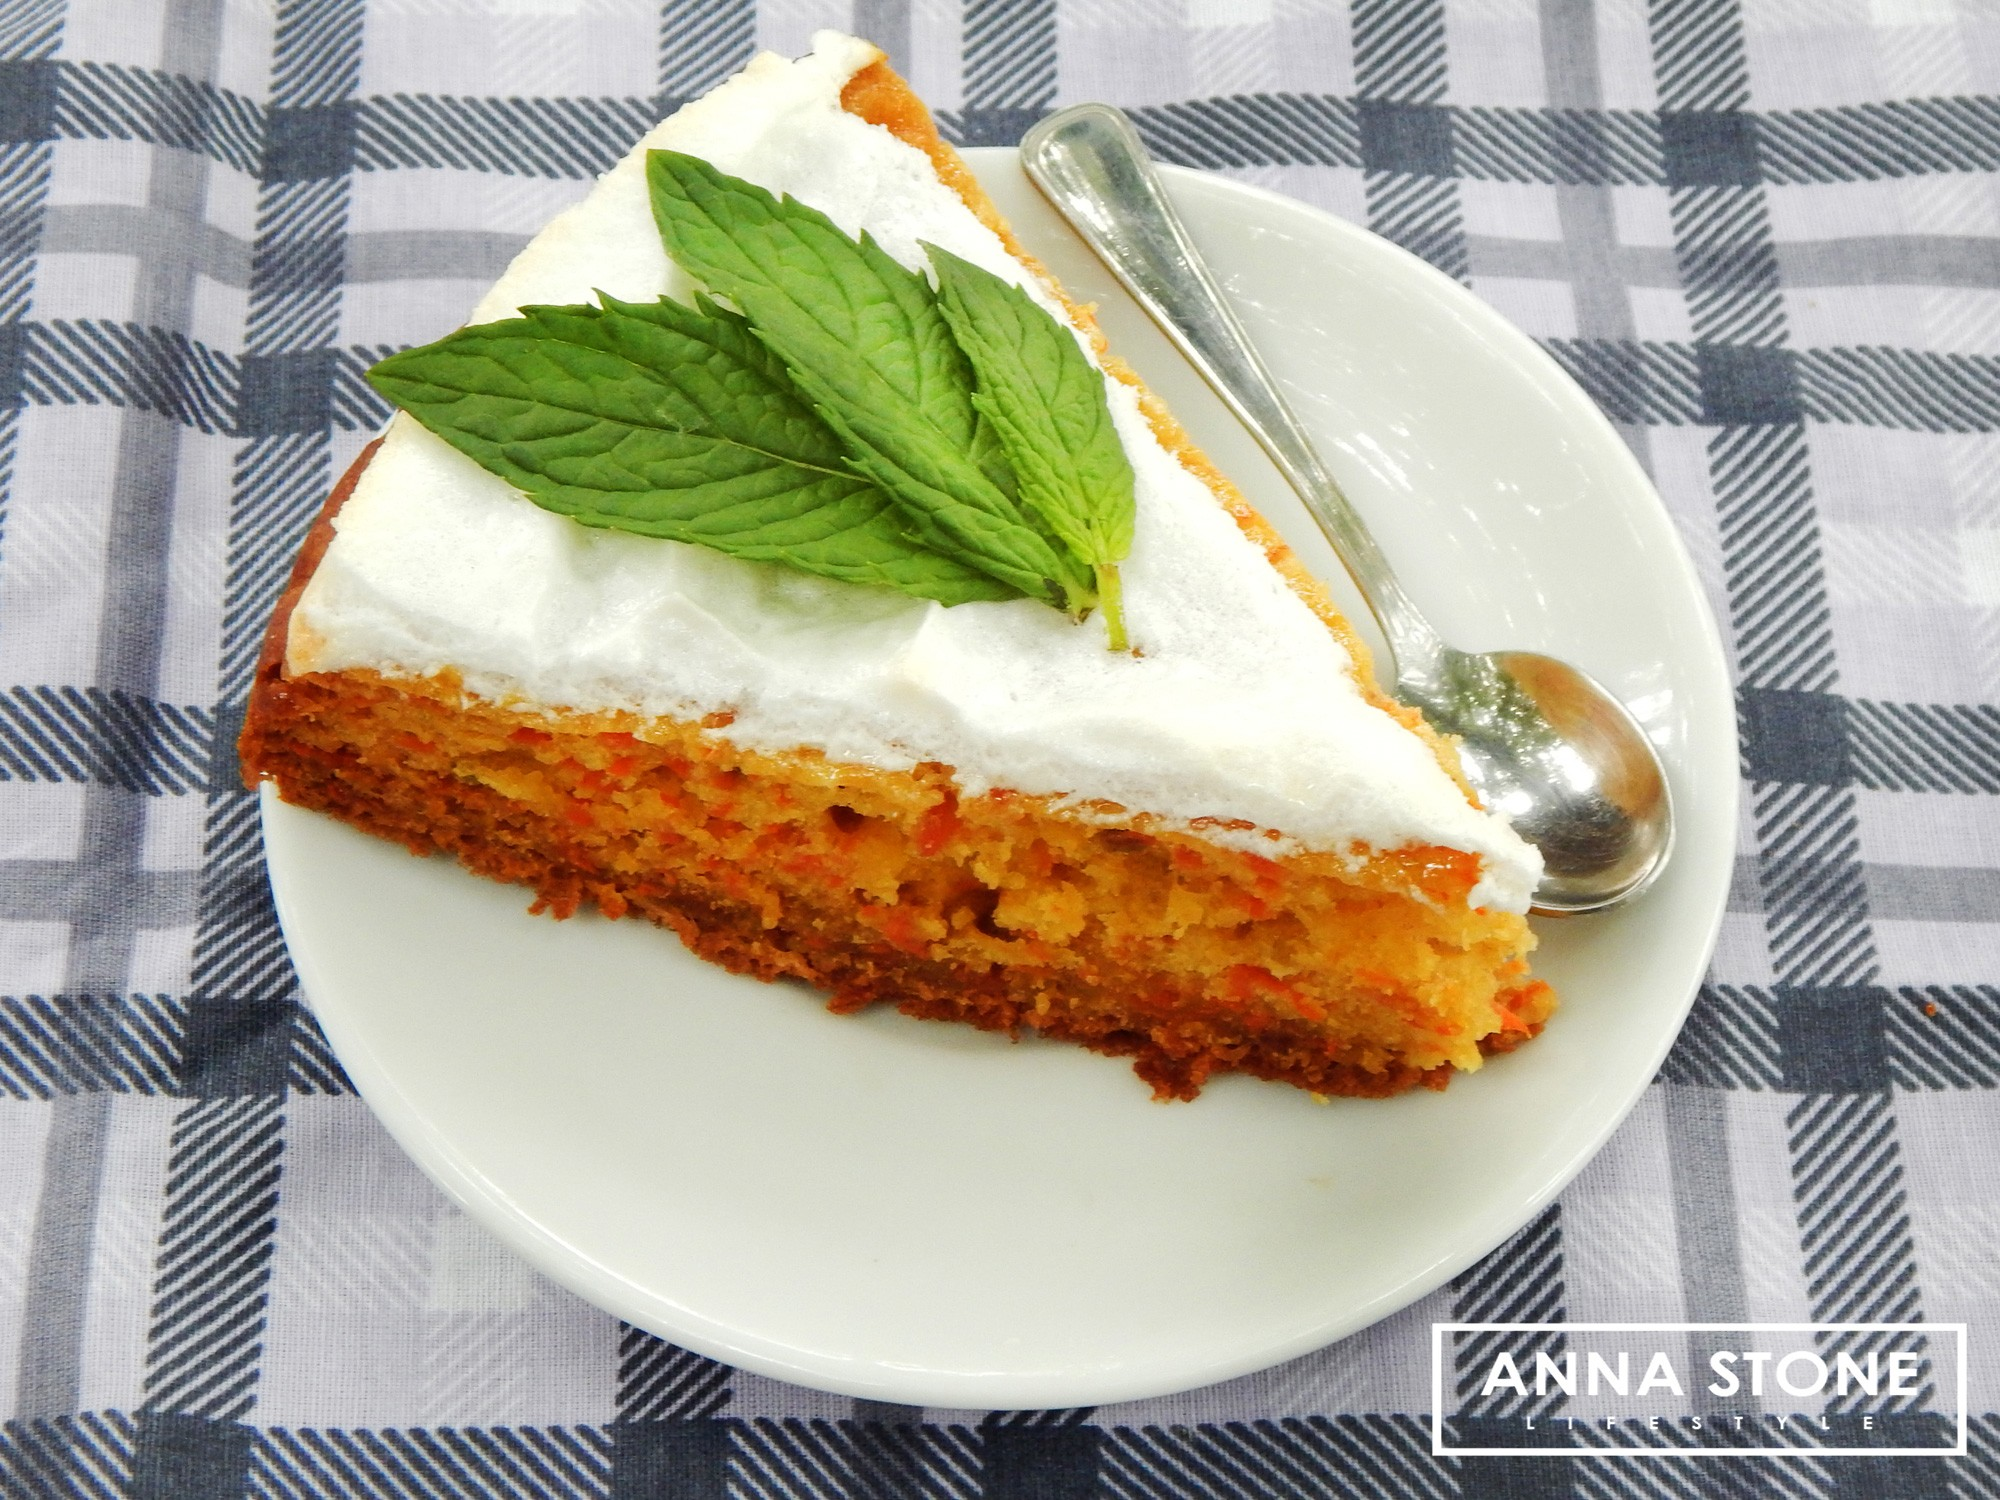 Image for Tropical carrot cake